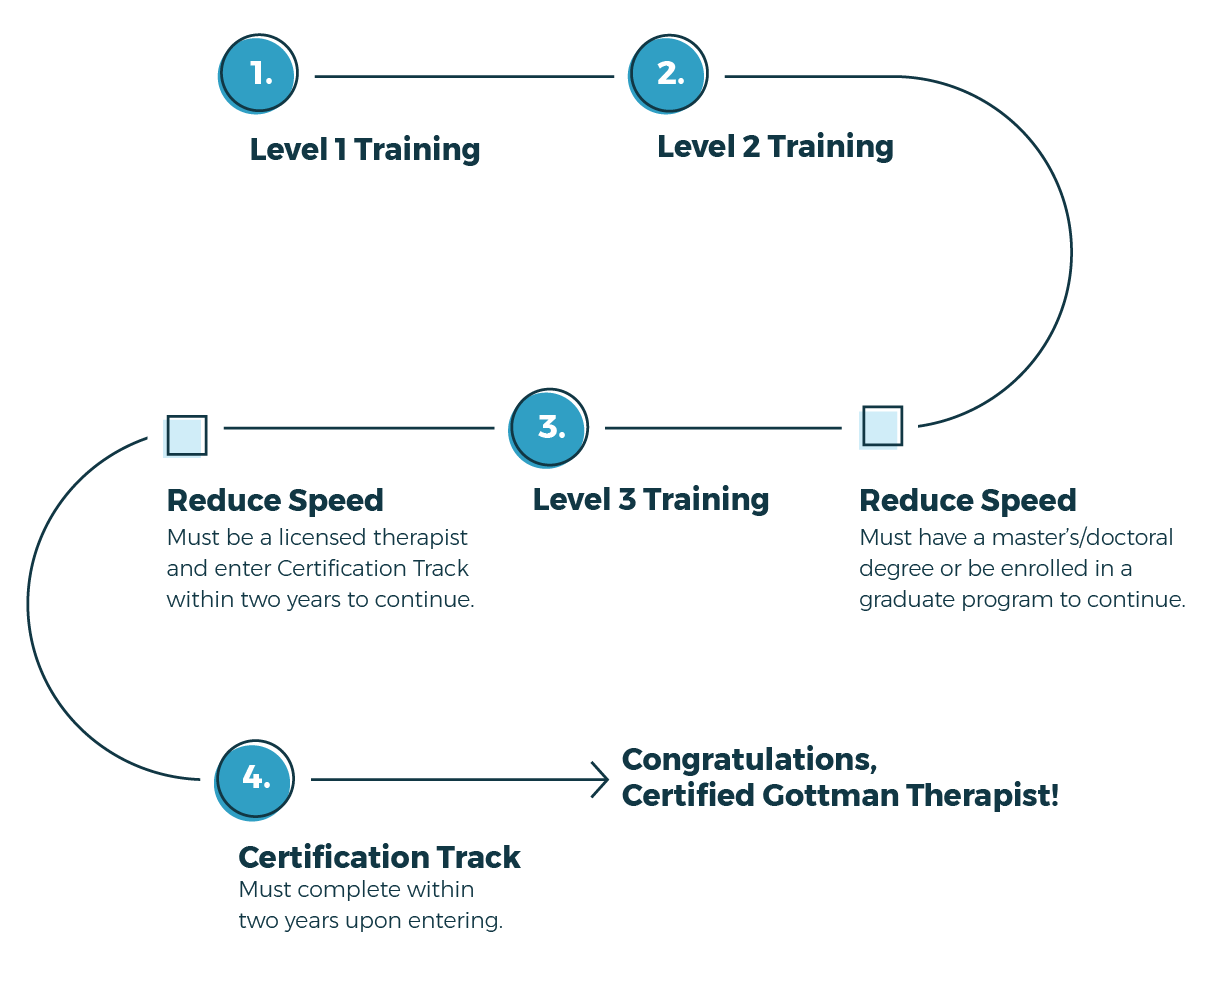 Roadmap To Certification Professionals The Gottman Institute